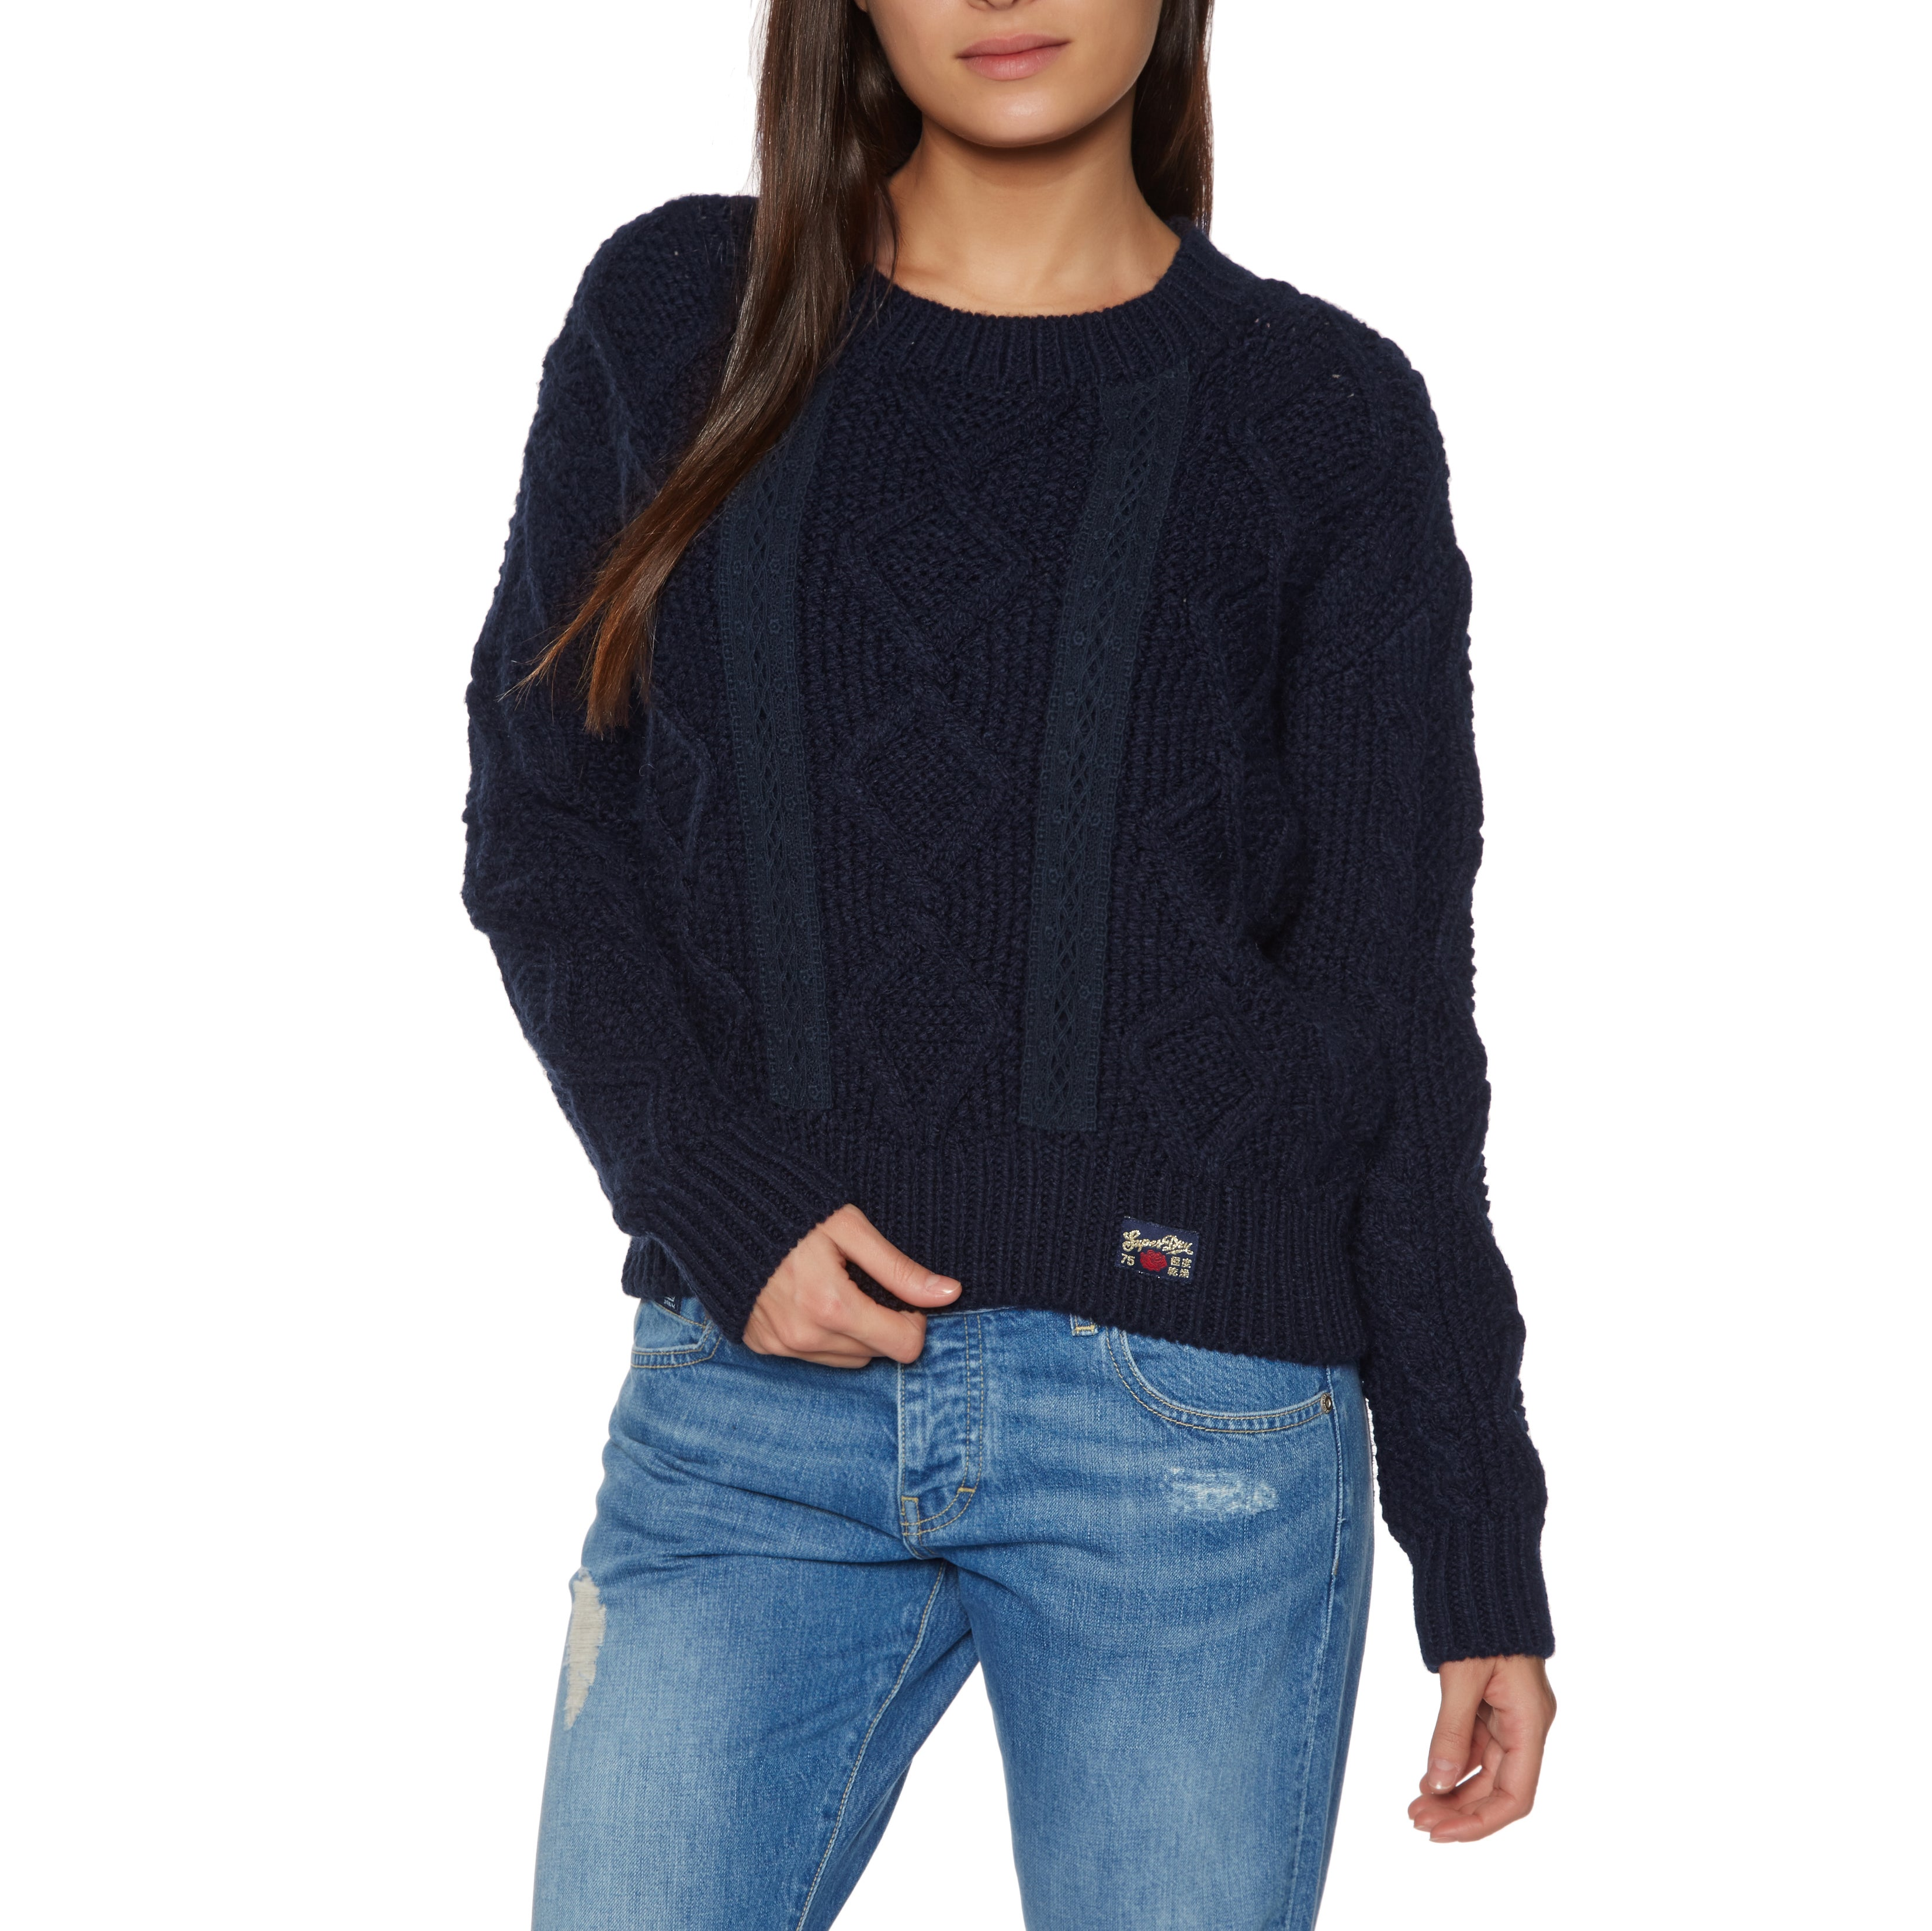 a3703dd58f8 Superdry Clara Lace Knit Womens Jumper Knits - Eclipse Navy All ...